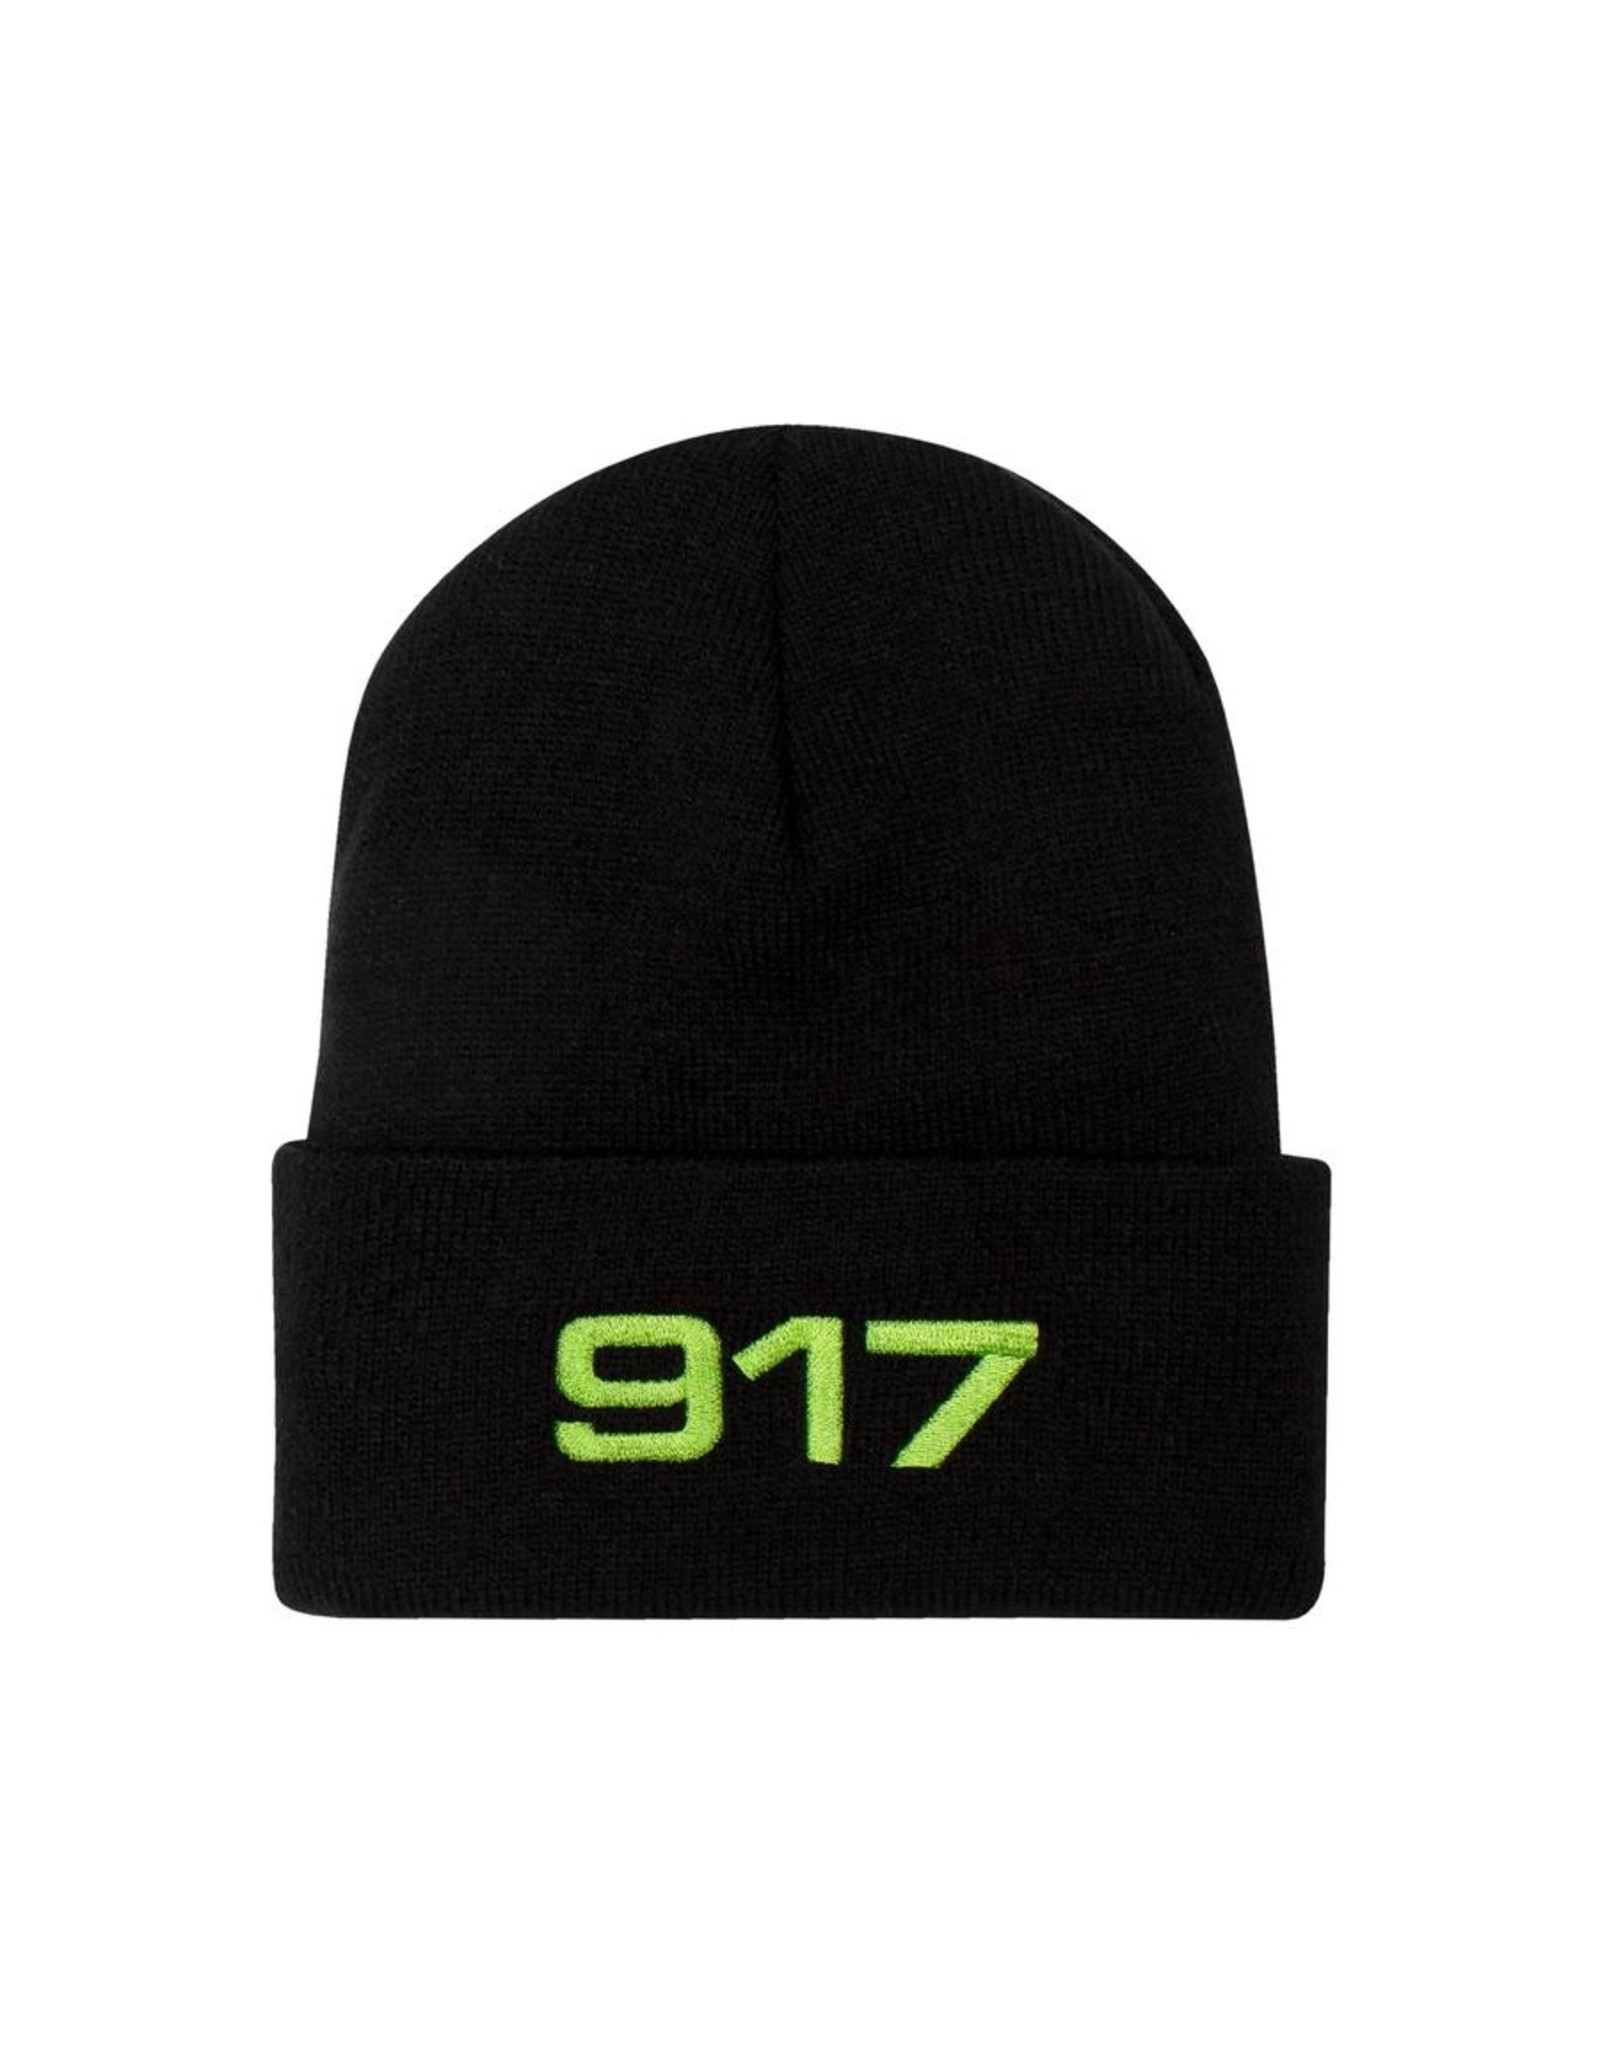 917 917 - RACING BEANIE - BLACK